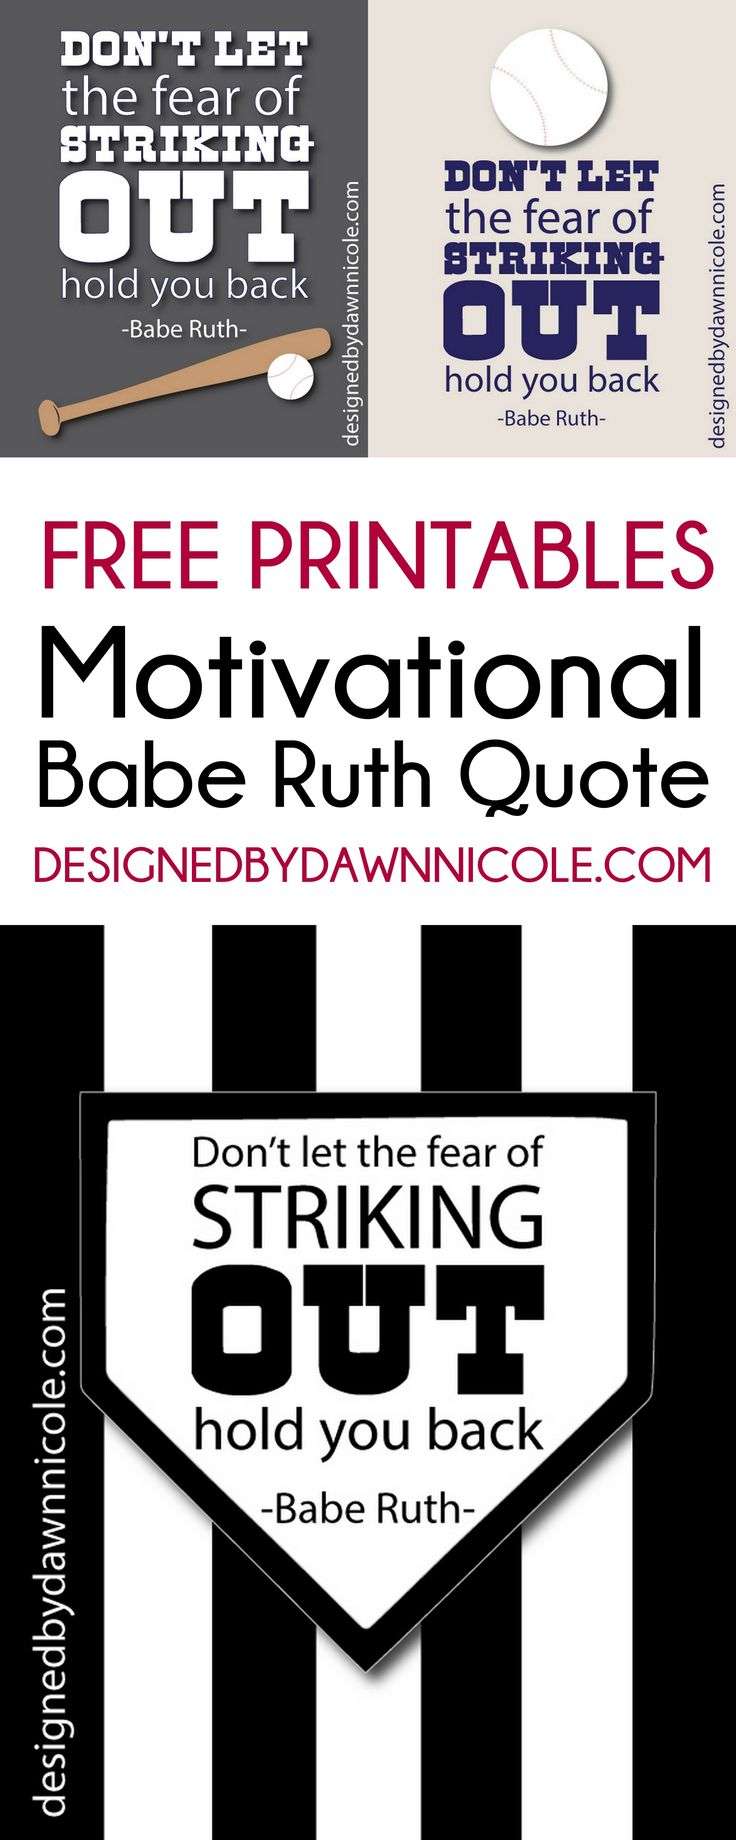 Persistence Motivational Quotes: FREE Printable: Motivational Babe Ruth Quote